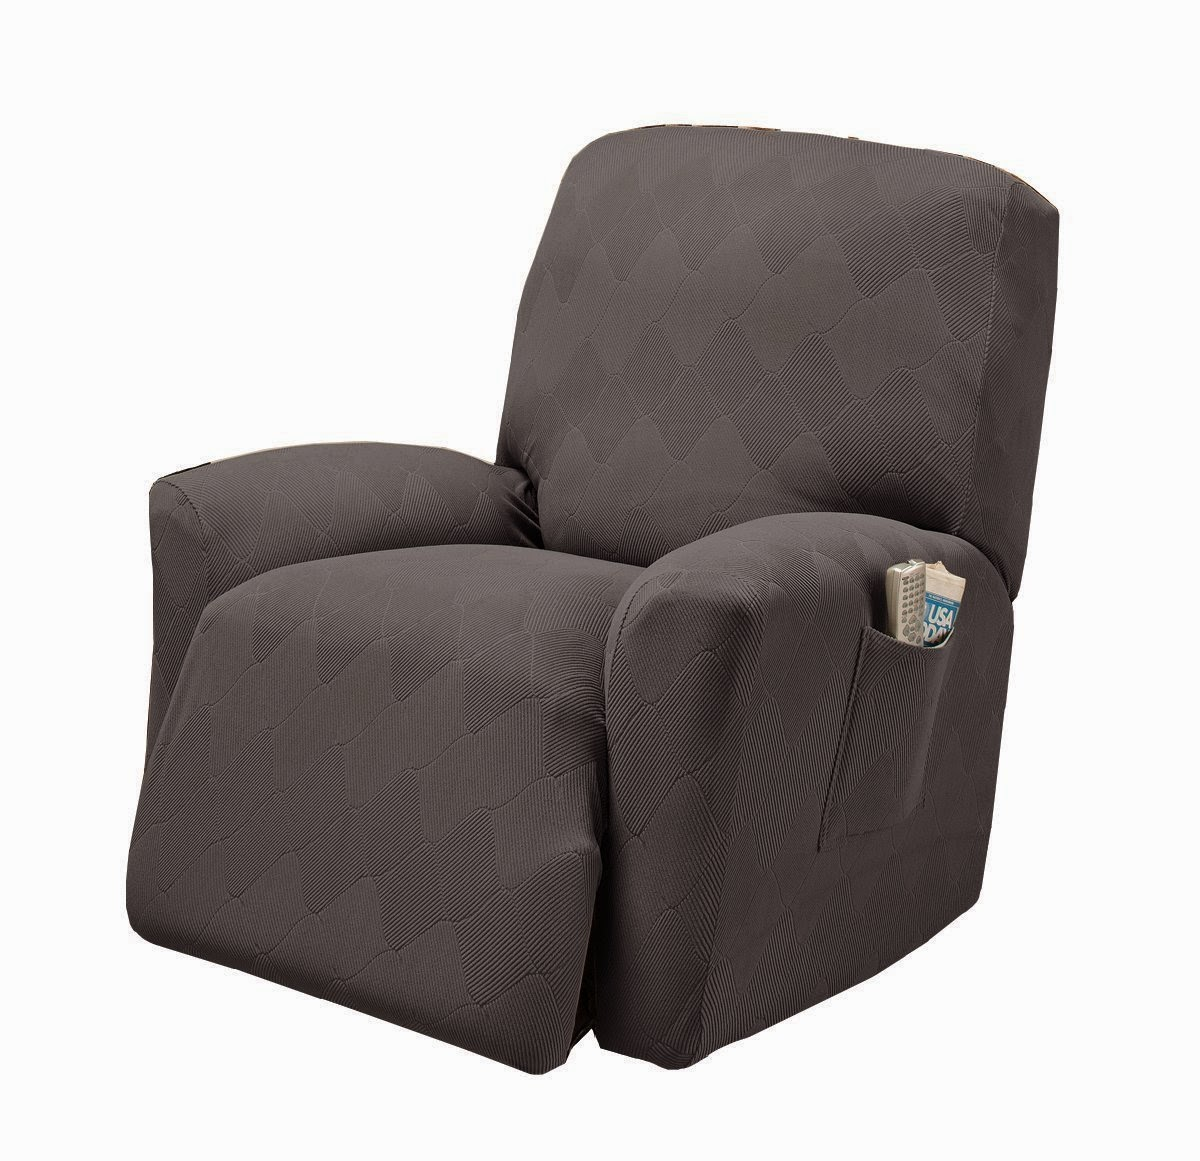 the best reclining sofas ratings reviews furniture slipcovers for reclining sofas. Black Bedroom Furniture Sets. Home Design Ideas